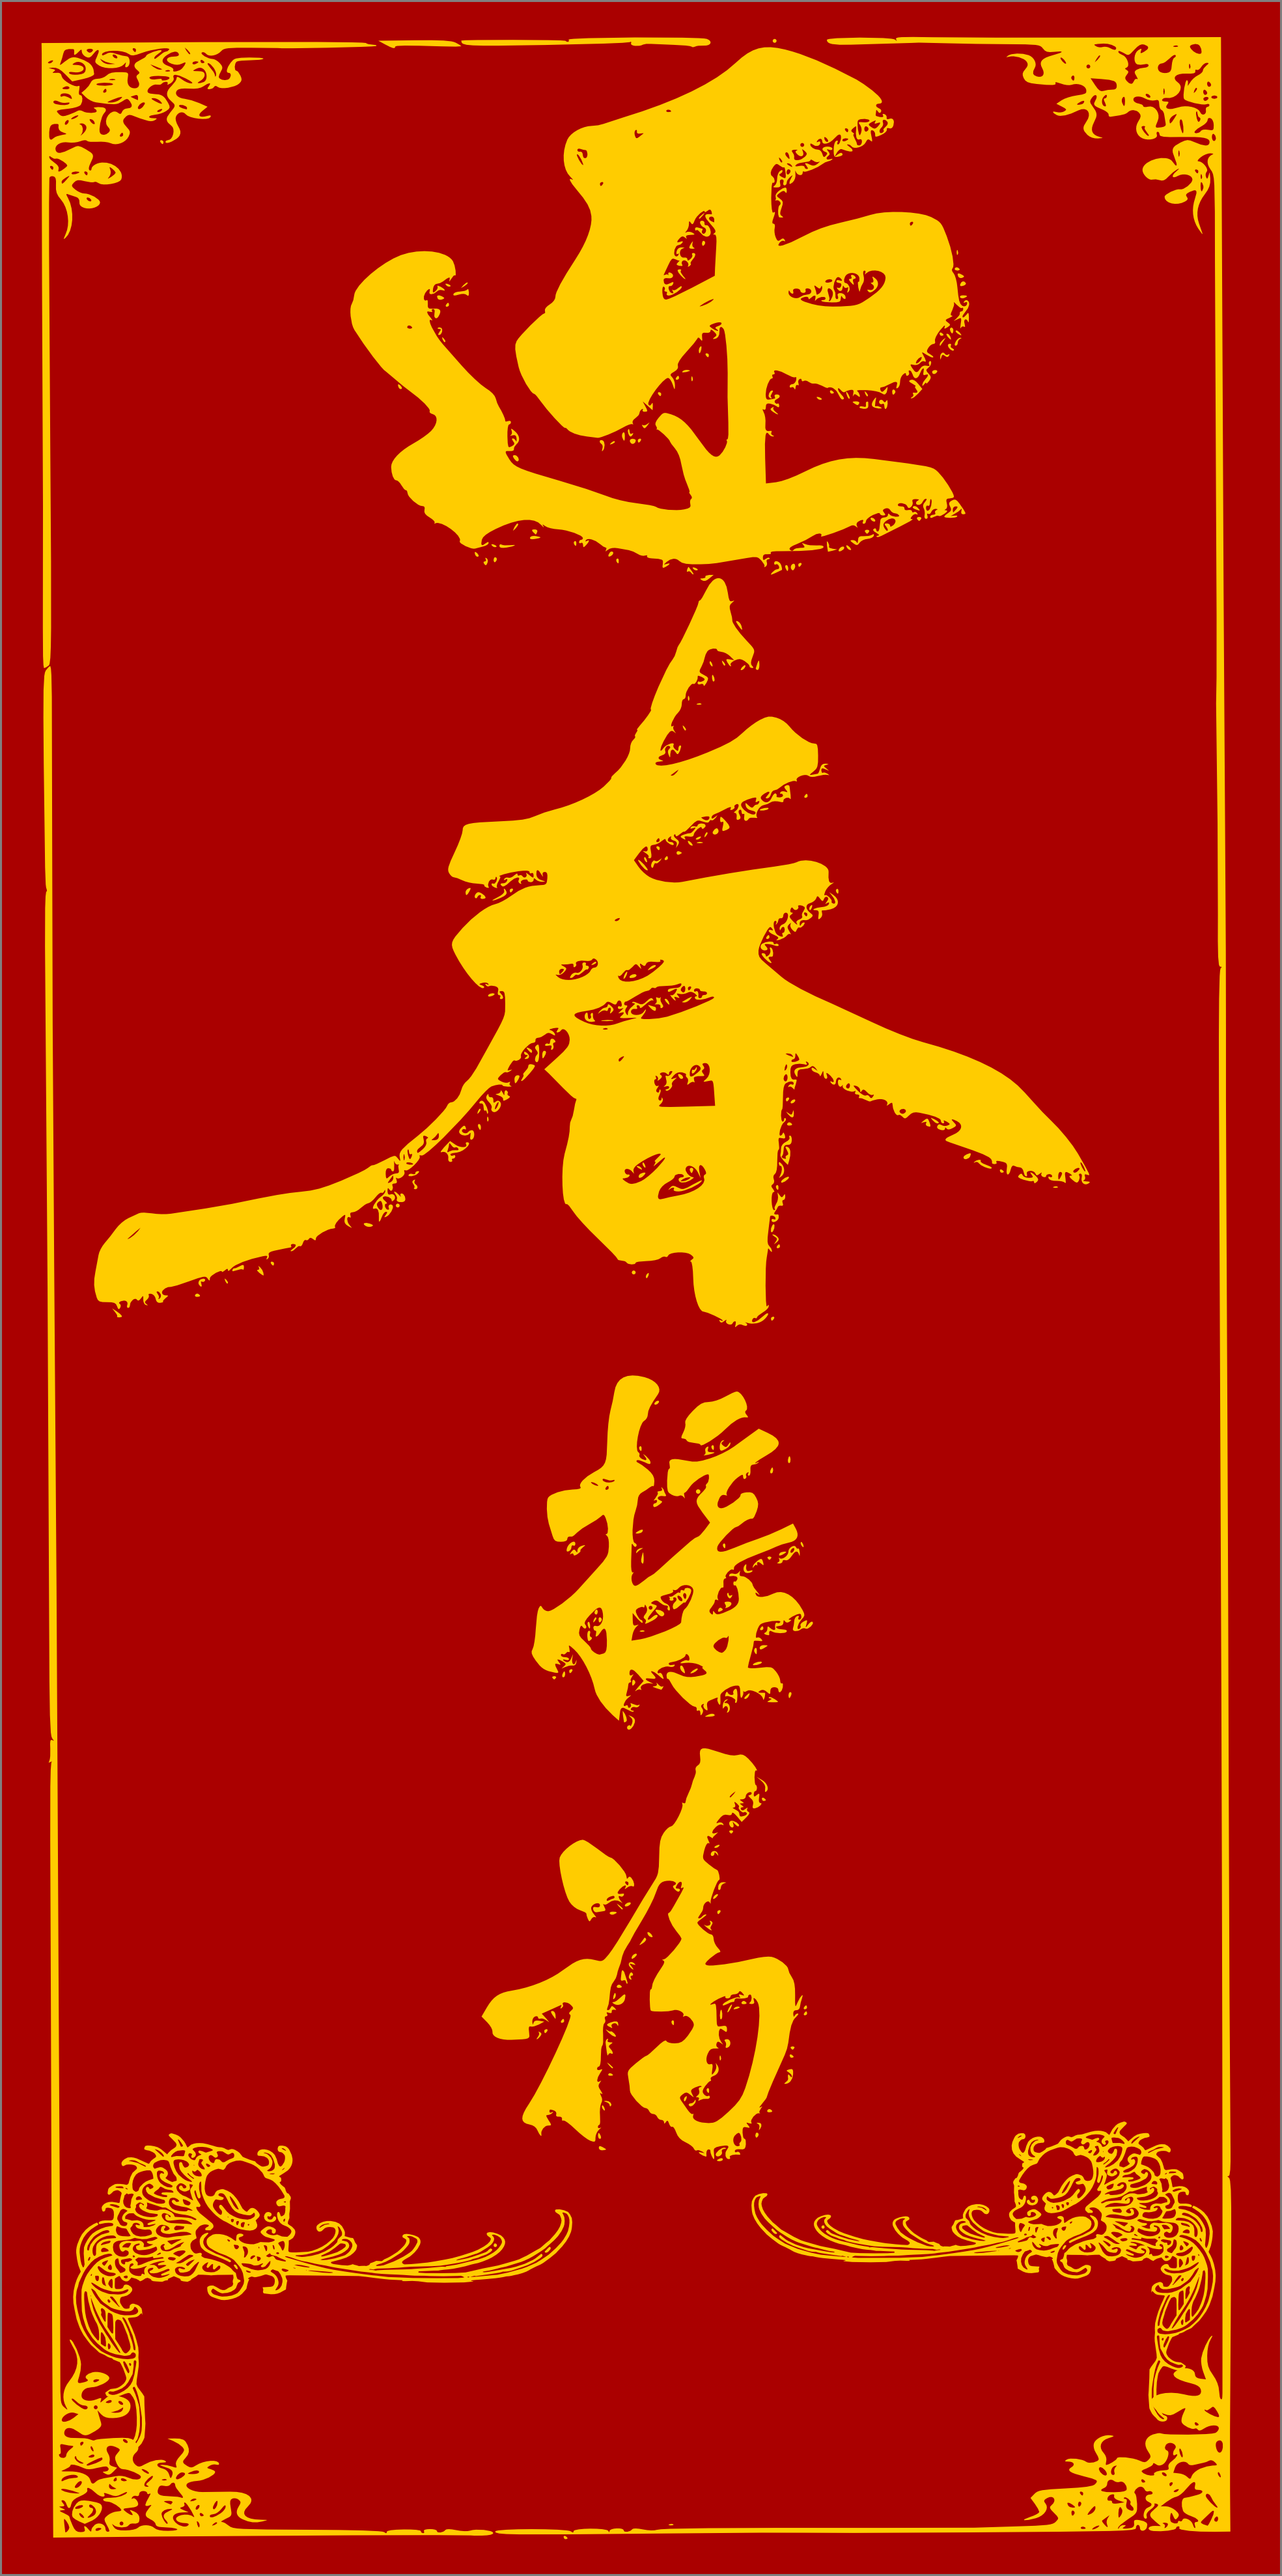 ORG CBOOK  red_envelope_hongbao_chinese_new_year_red_envelope_coloring_book_colouring-1969px. png · Mid Autumn FestivalSpring FestivalChinese New YearChinese PlusPng.com  - Chinese New Year HD PNG